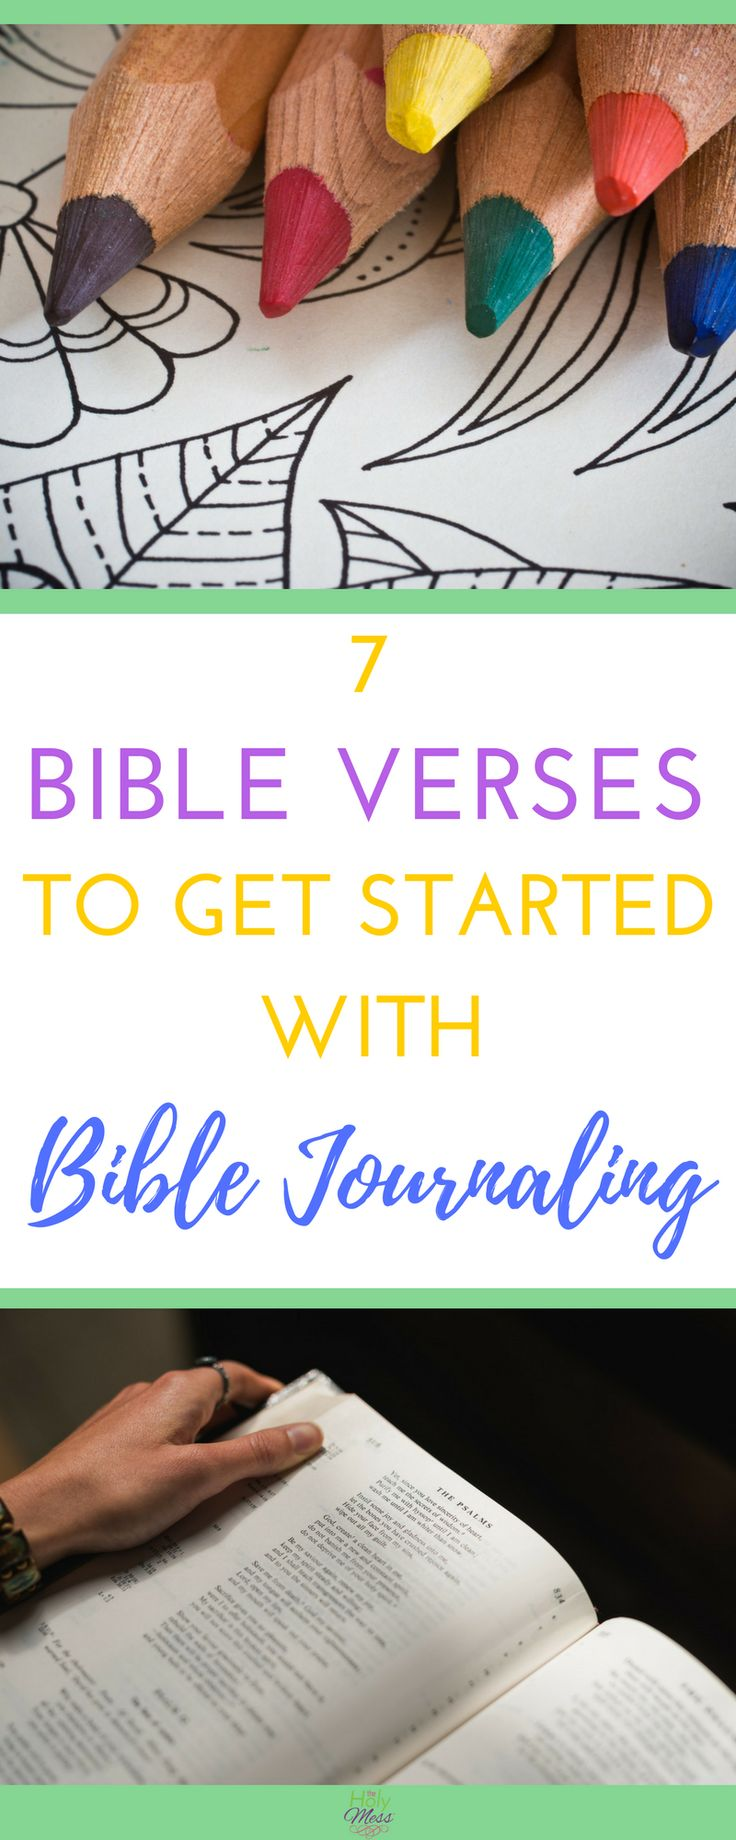 Bible Journaling|Easy|Beginner|Bible Verses|Faith|Prayer Journal